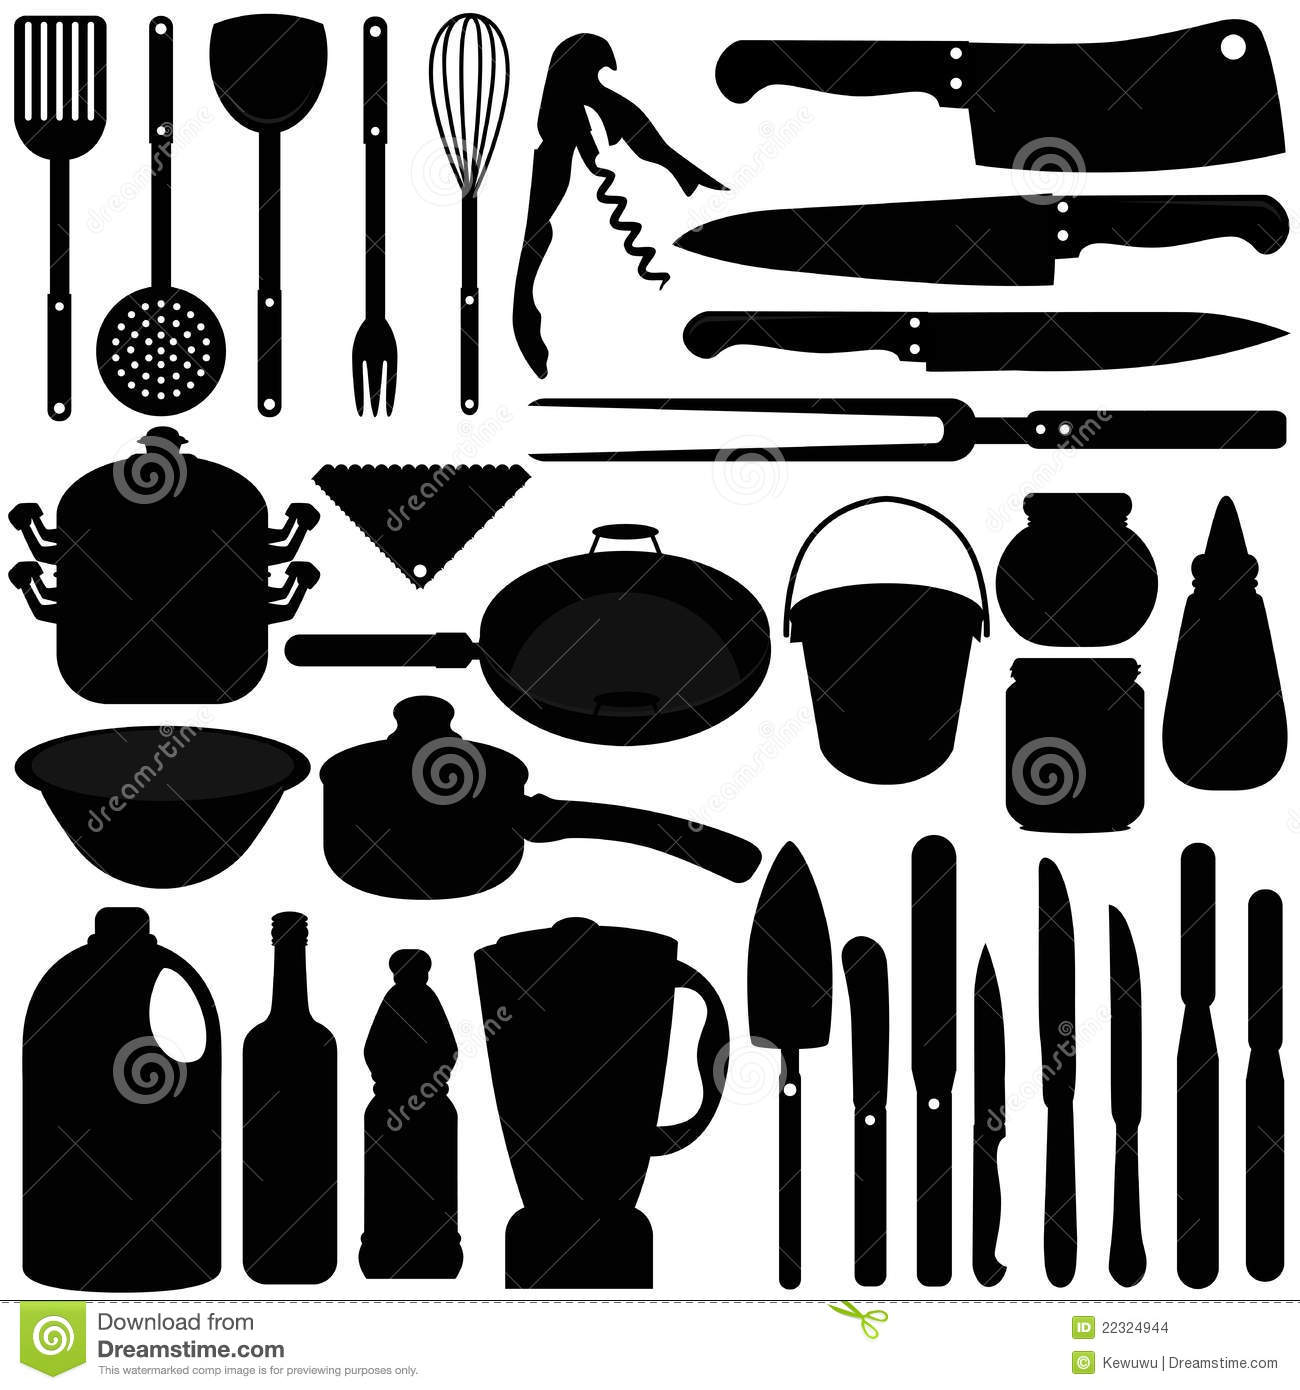 Kitchen Tools Drawings Kitchen Design Gallery Kitchen Utensils Tools And Equipments